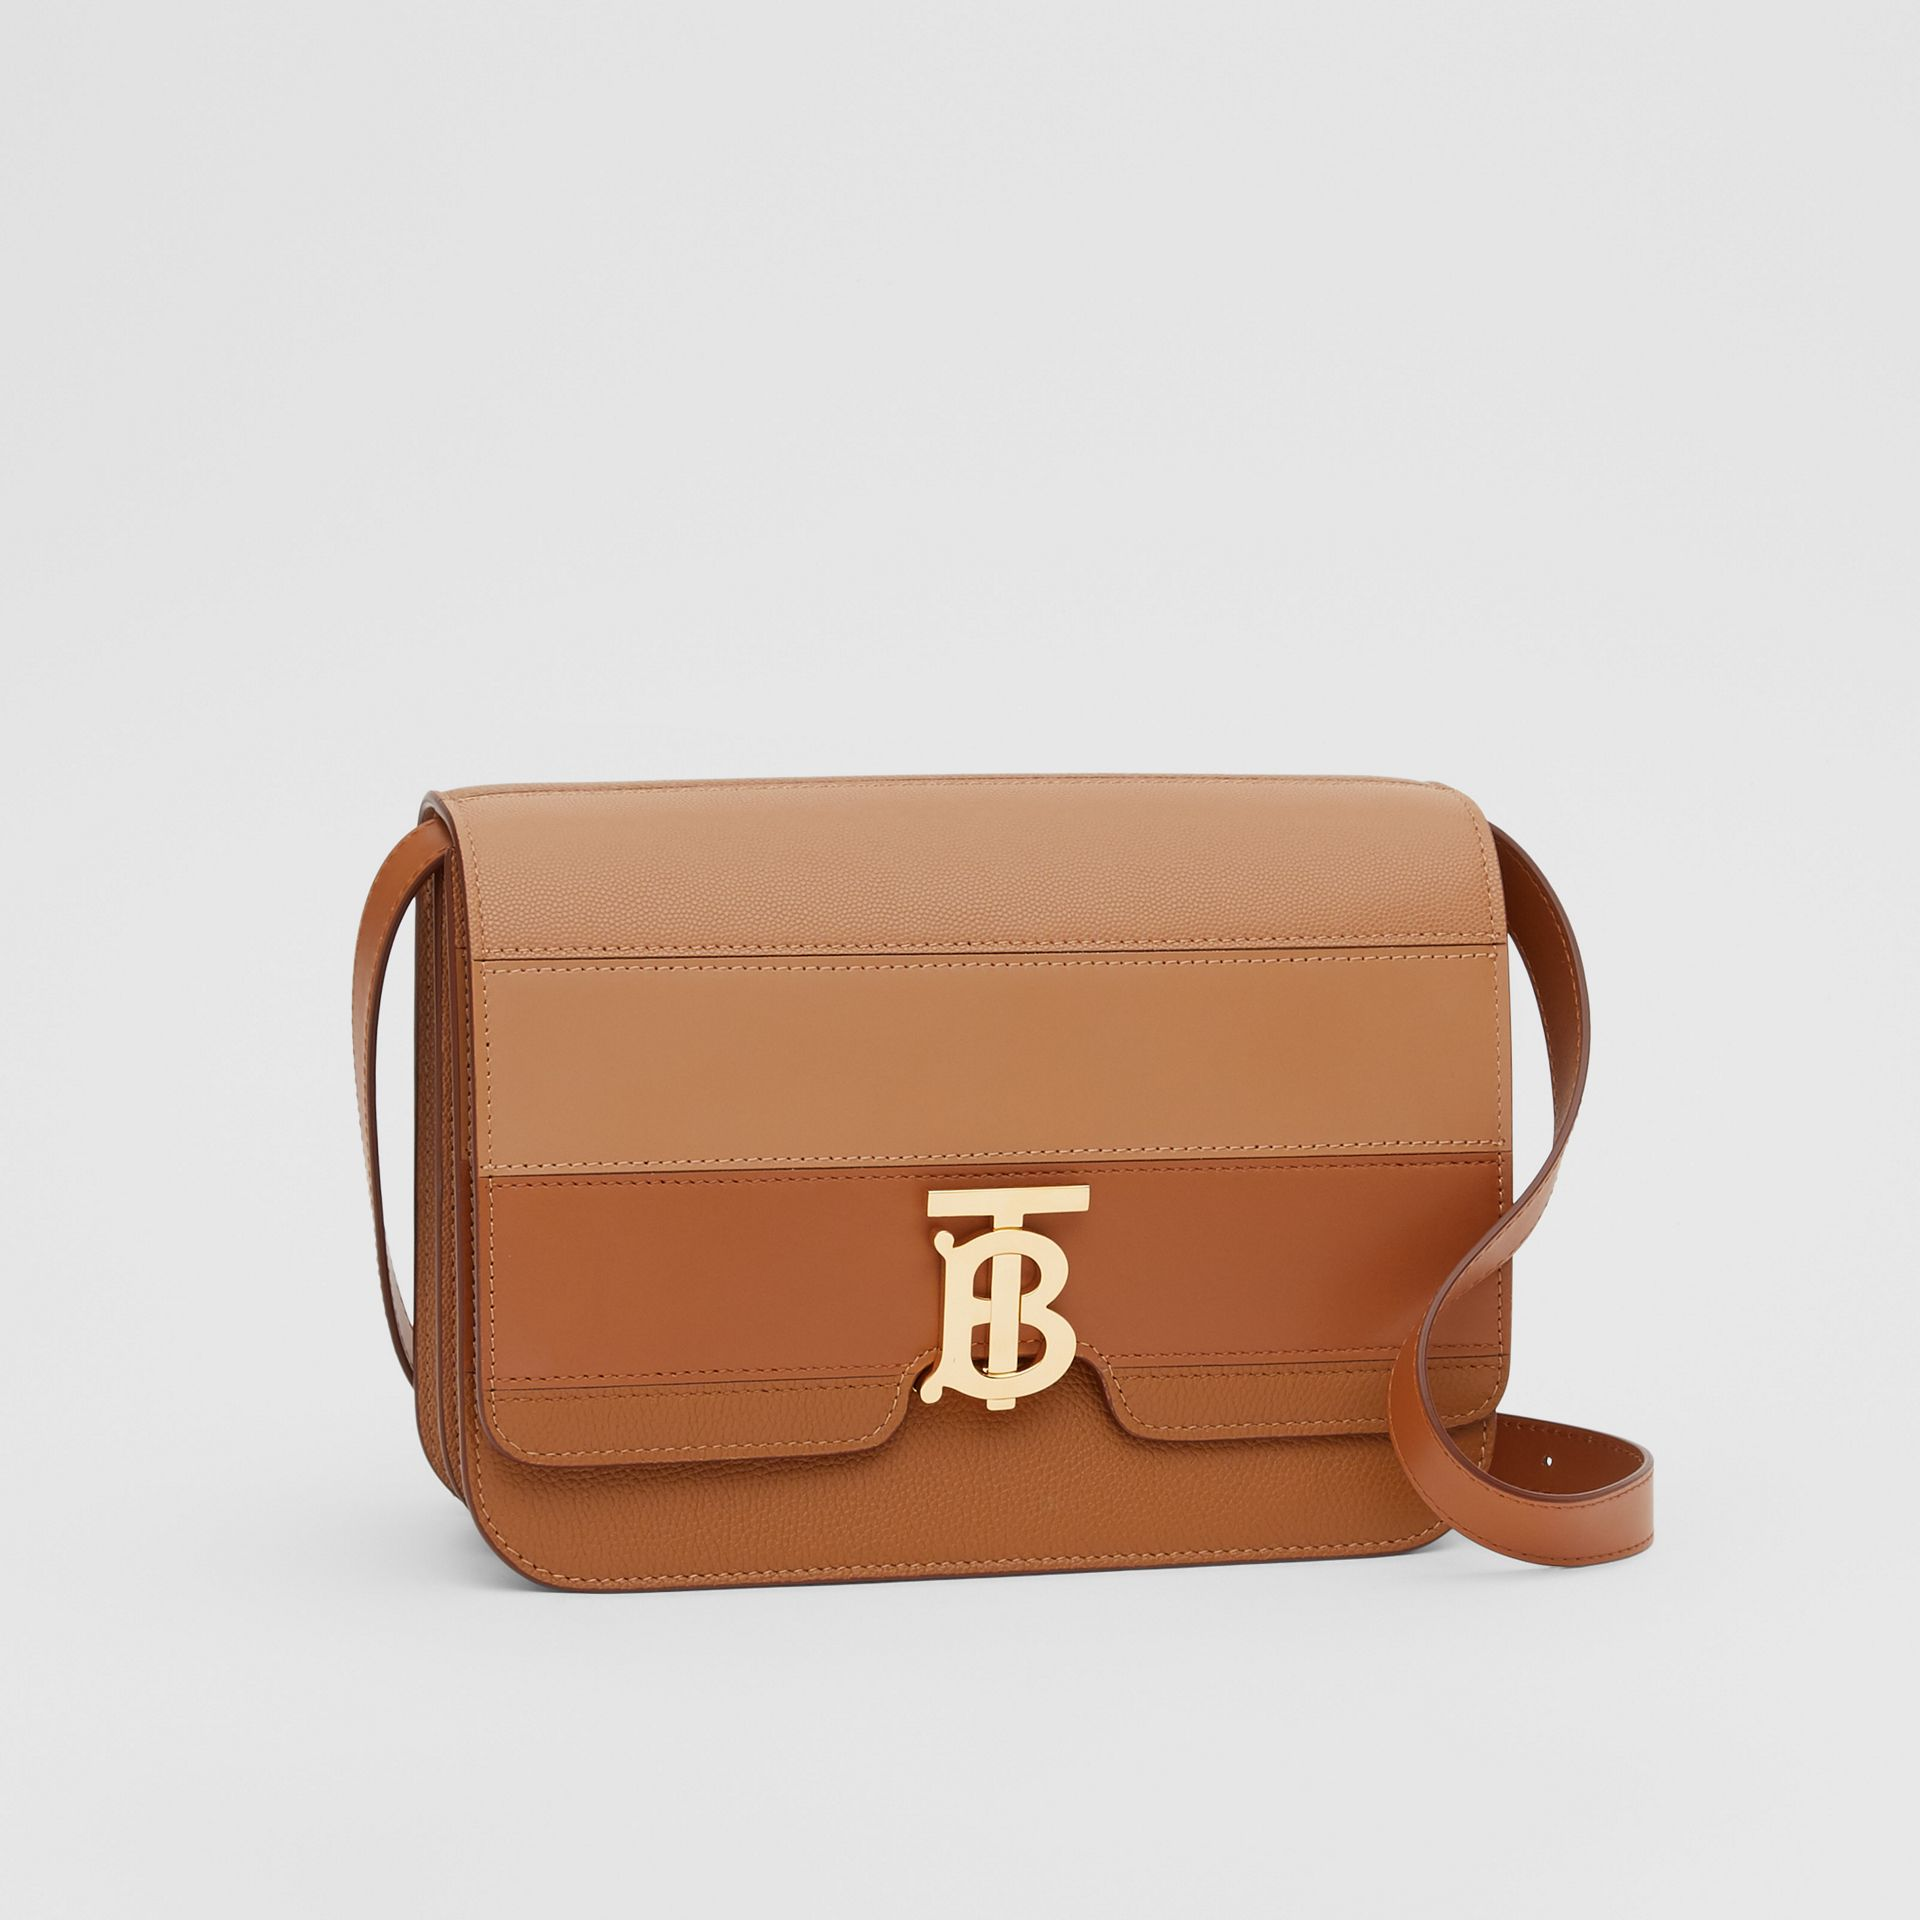 Medium Panelled Leather TB Bag in Maple - Women | Burberry - gallery image 4